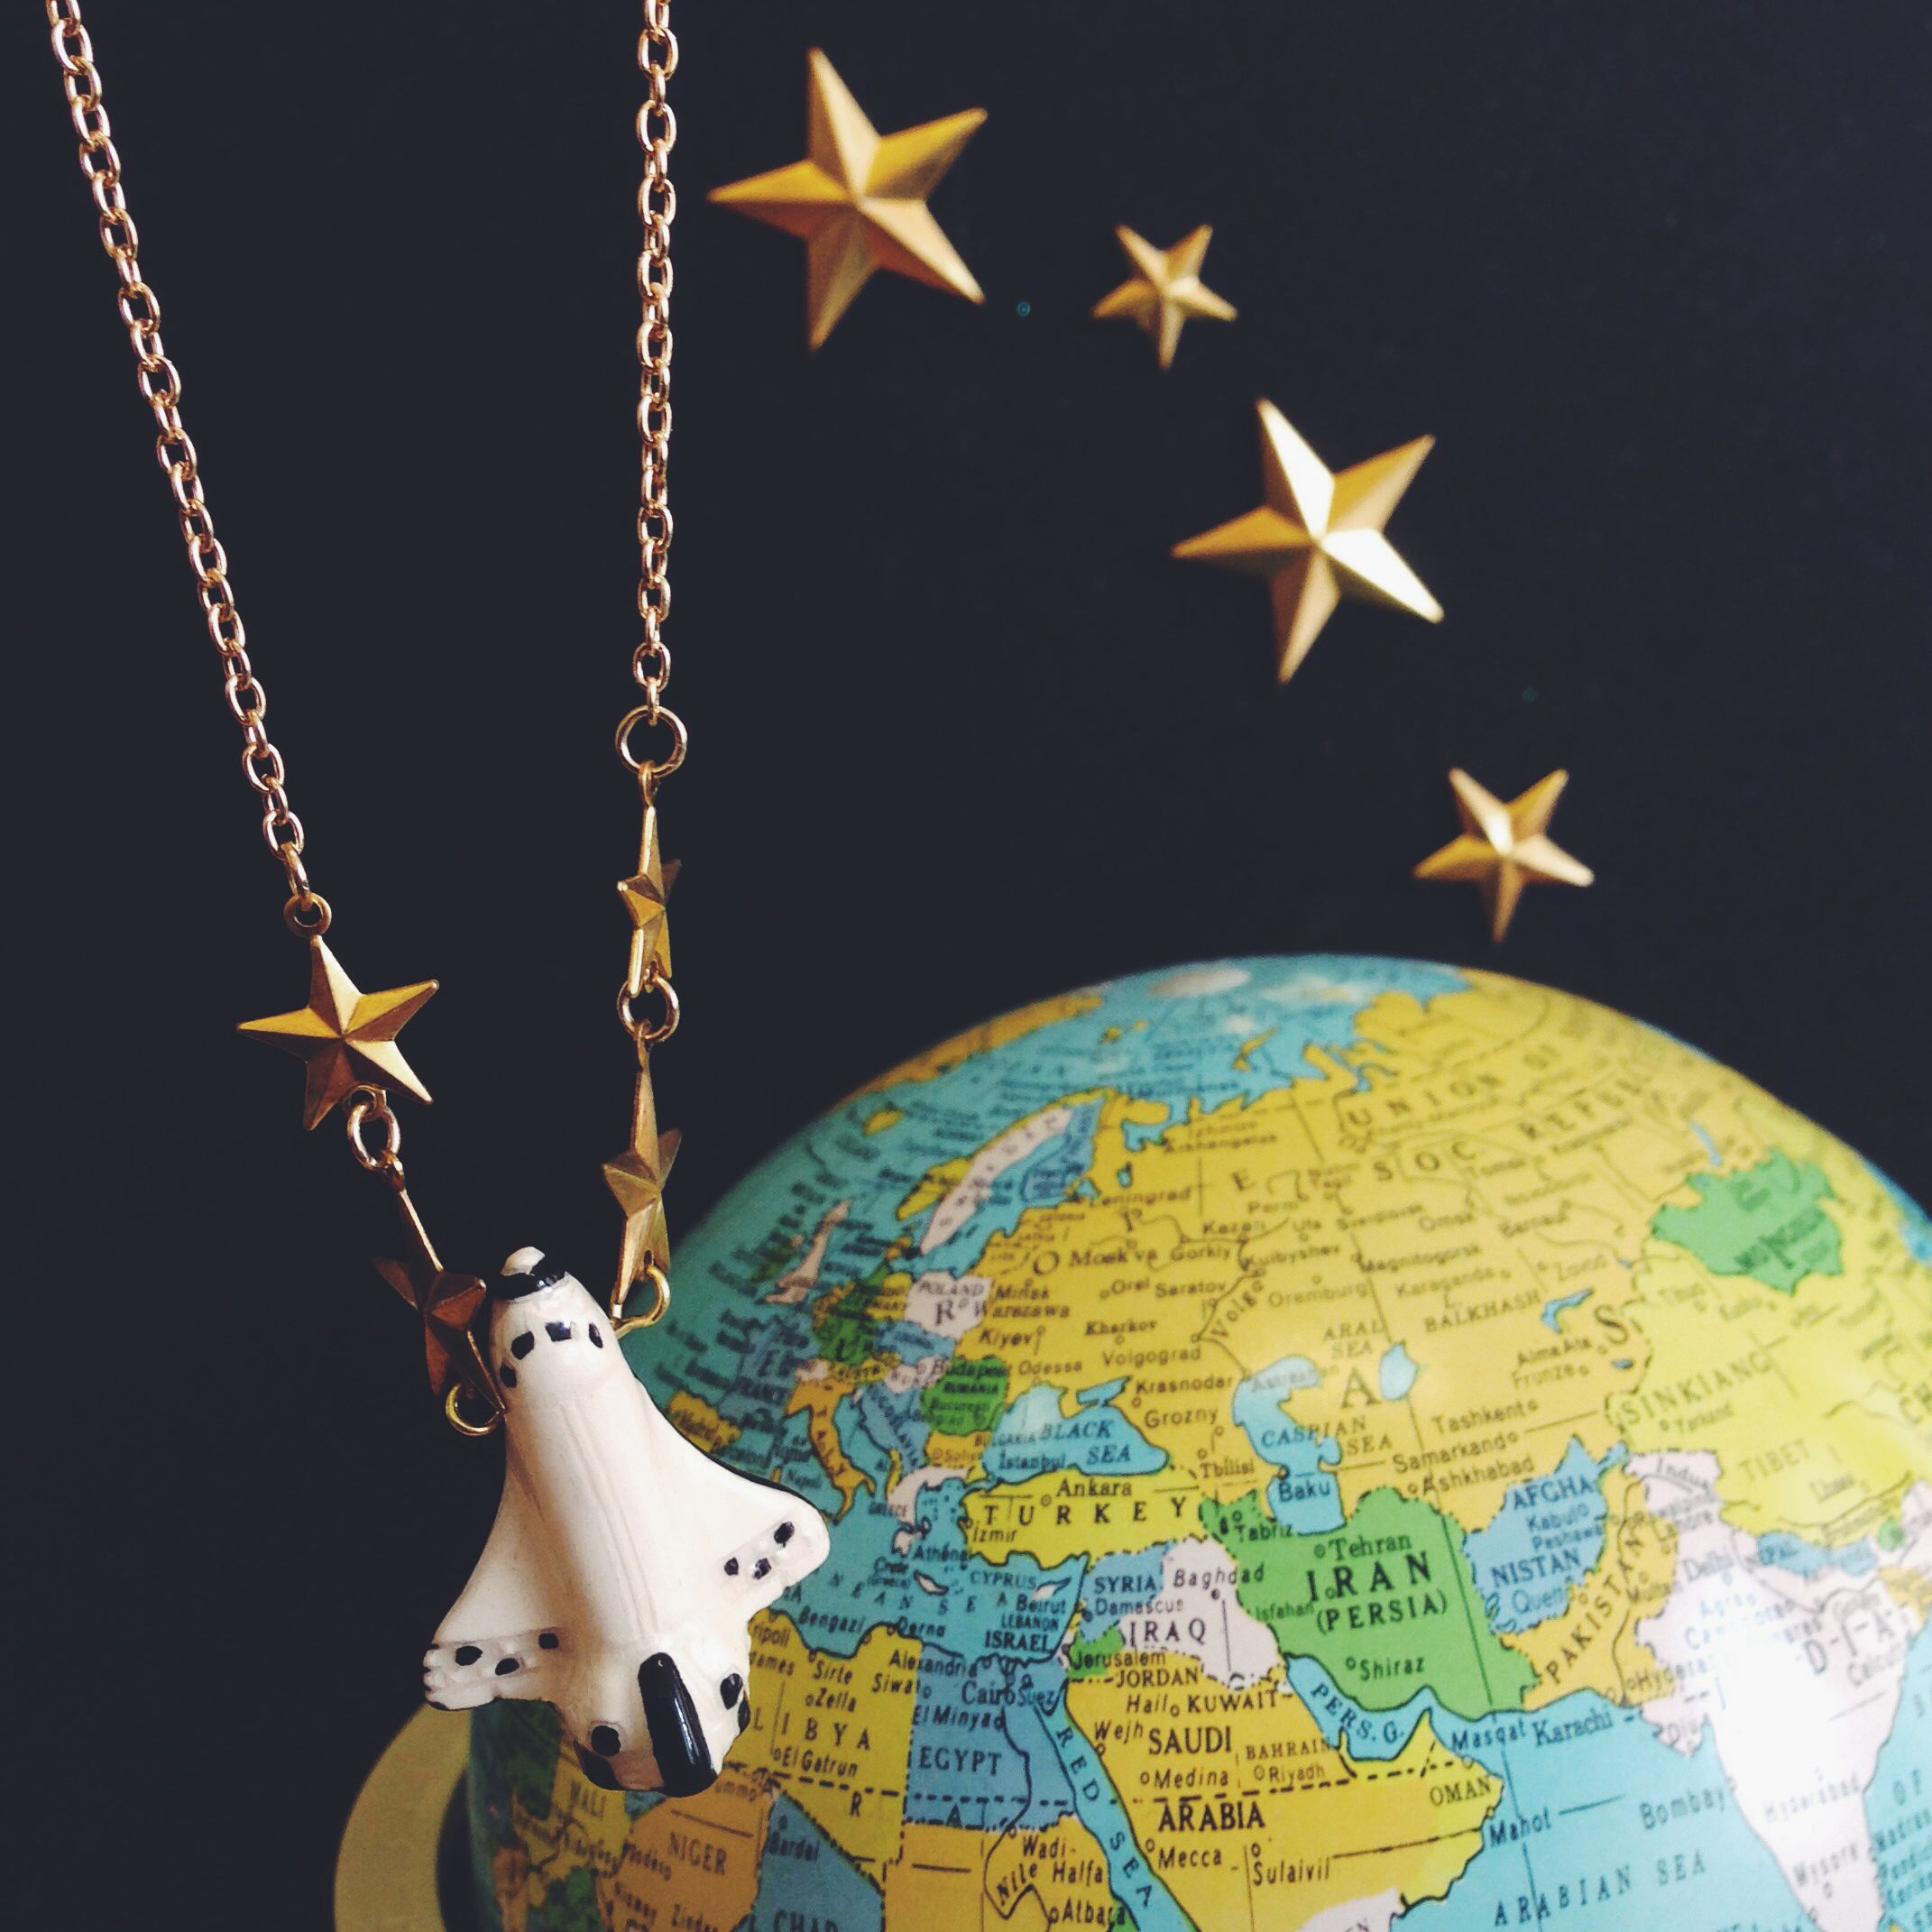 To Infinity! Space Shuttle Necklace